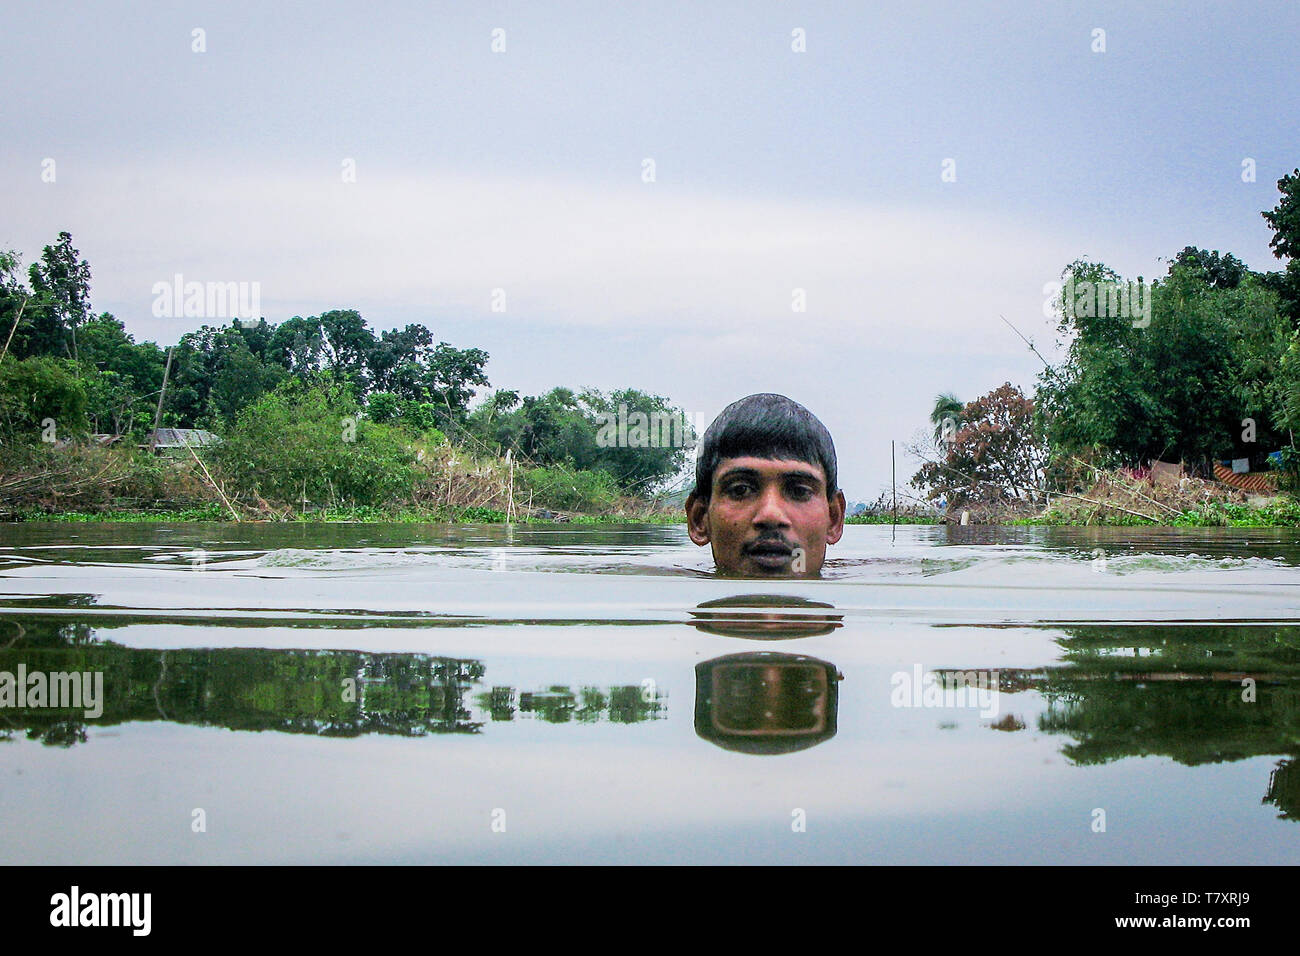 Mohammad Khokon swims in the Jamuna River where his house used to be. A flash flood washed it into the Jamuna River in Sirajganj, Bangladesh in 2007. Global warming cause the monsoon rain and floods to start earlier. Global warming also accellerate the melting of the ice and snow in the Himalayas, which feeds into the already saturated rivers that make the Ganges Delta. The result is devastating to people who live in the densely populated delta area. While the Himalayas and flooding wreak havoc from the north, rising sea levels cause salt water intrusion in the low-lying agricultural zones alo - Stock Image